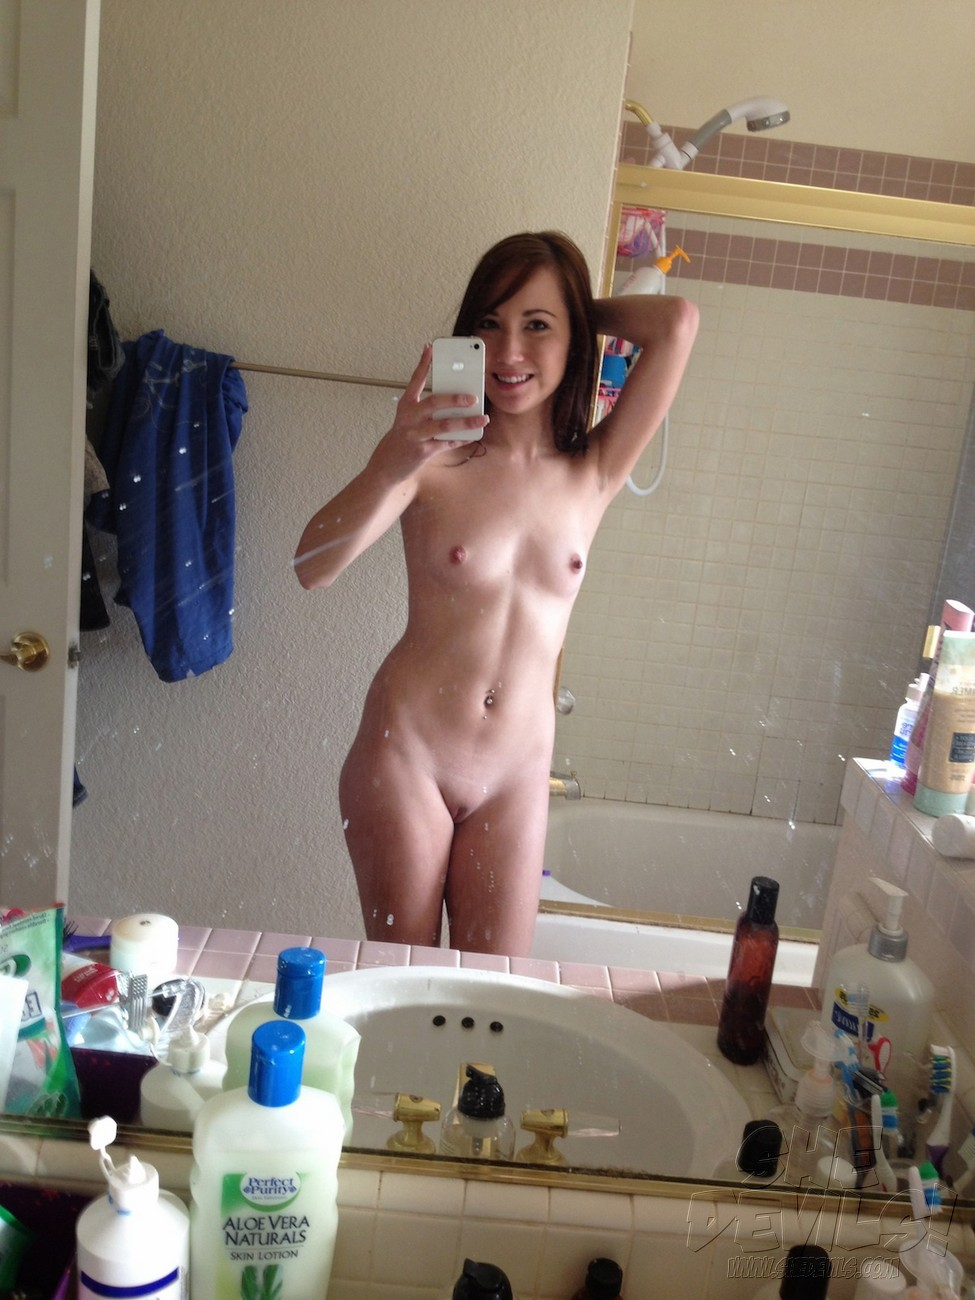 bisexual Female Good Strip Show have perfect body, gorgeous